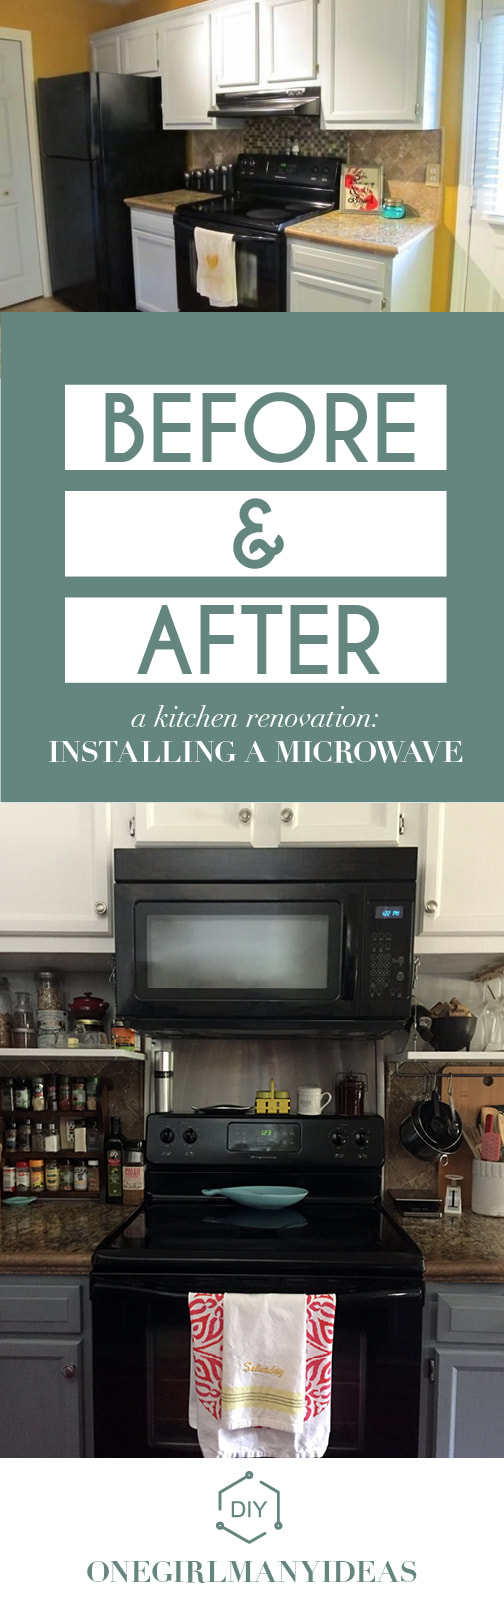 Majestic How To Install An Diy Blog Onegirlmanyideas Microwave Vent Hood Combo Dimensions Microwave Vent Hood Size houzz-03 Microwave Vent Hood